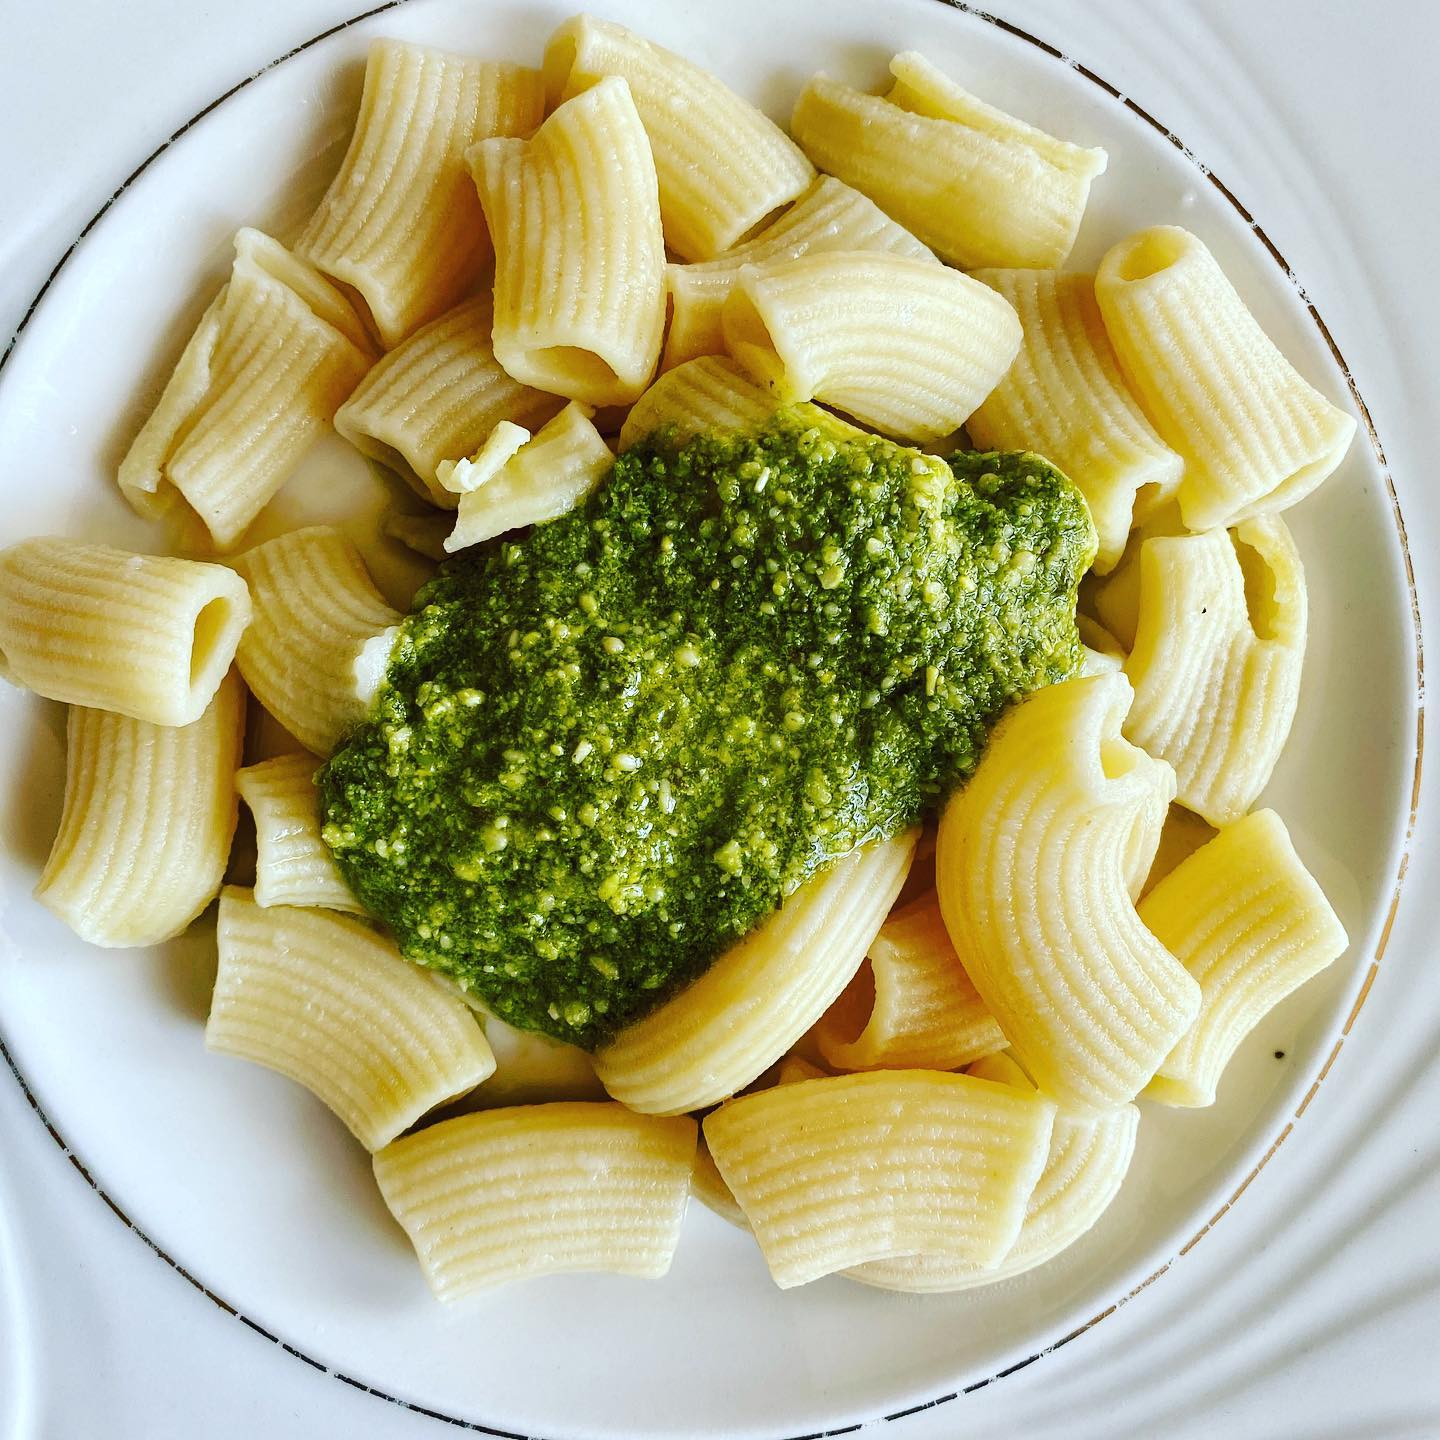 30 minutes One Pot Meal Artisan Pasta Rigatoni in Pesto Sauce from VitaClay